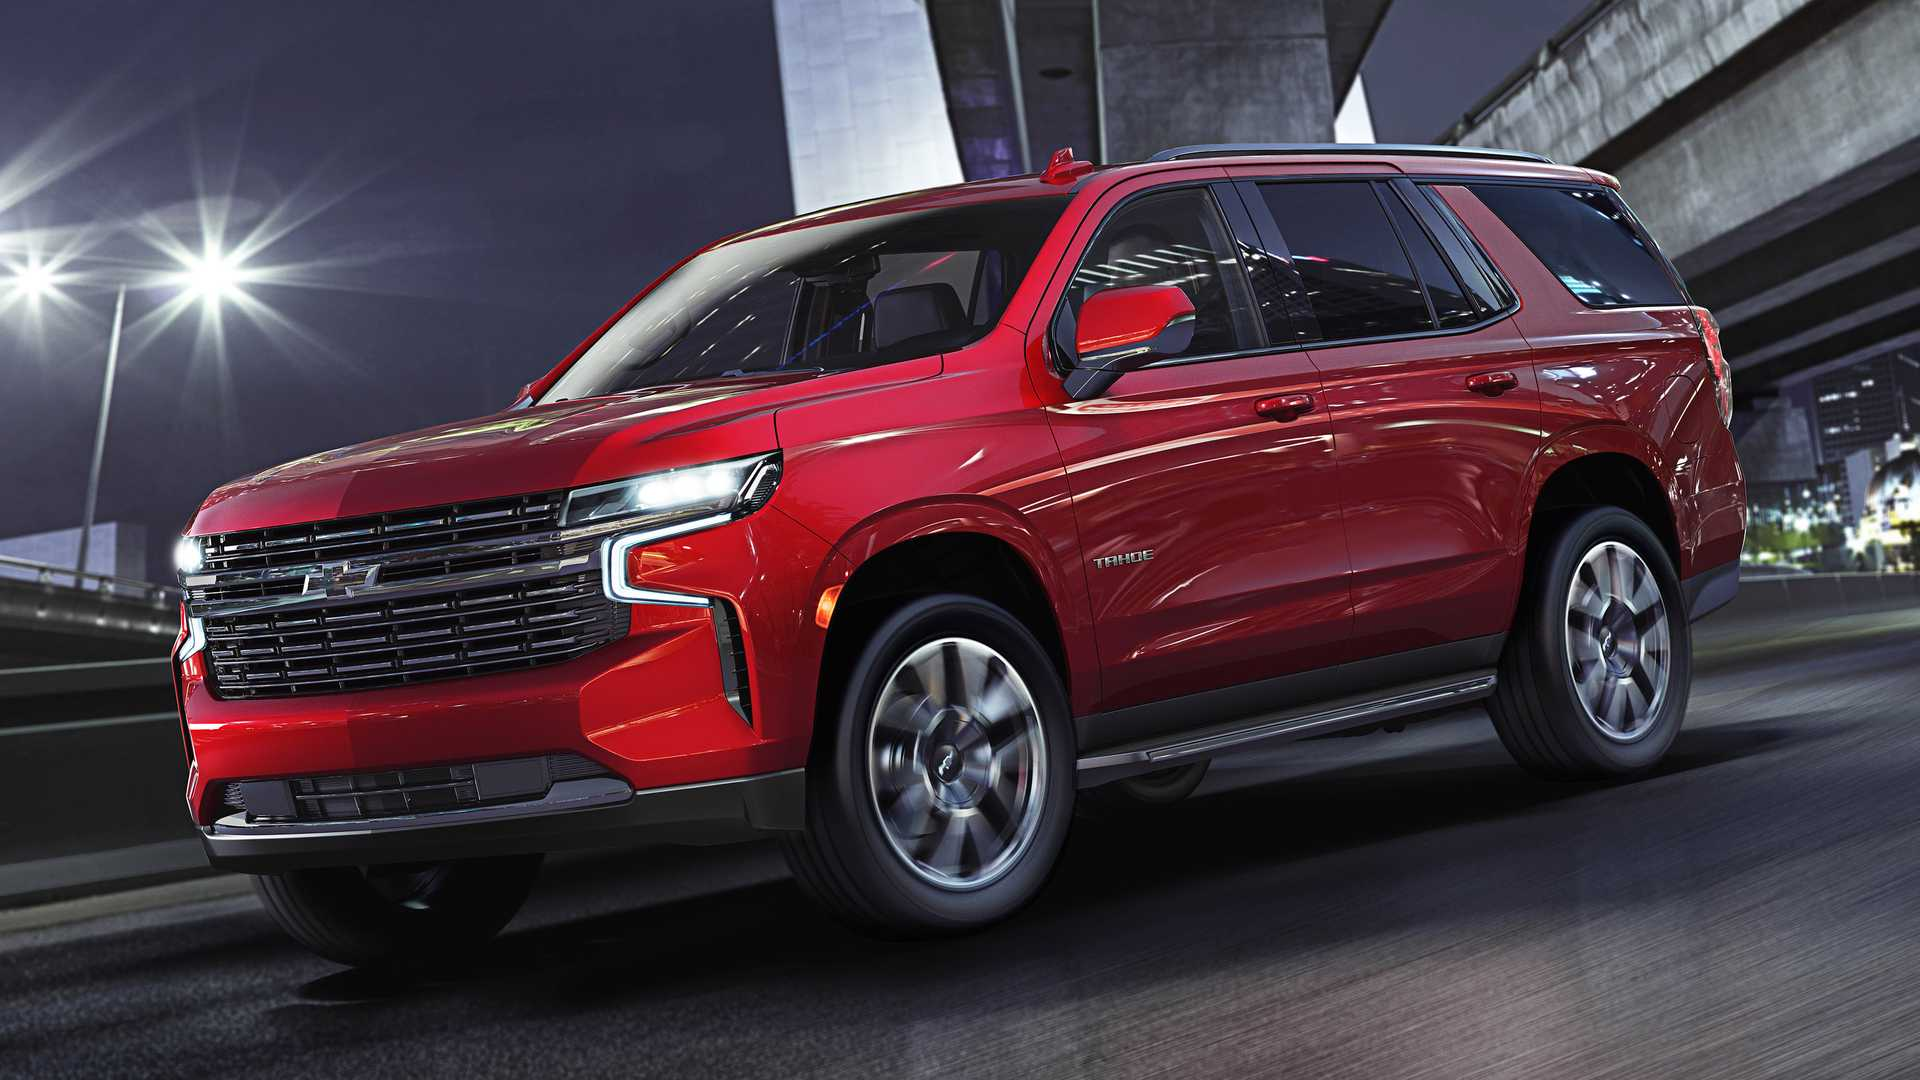 2021 Chevy Tahoe Priced From 50 295 Premier Trim Is 63 895